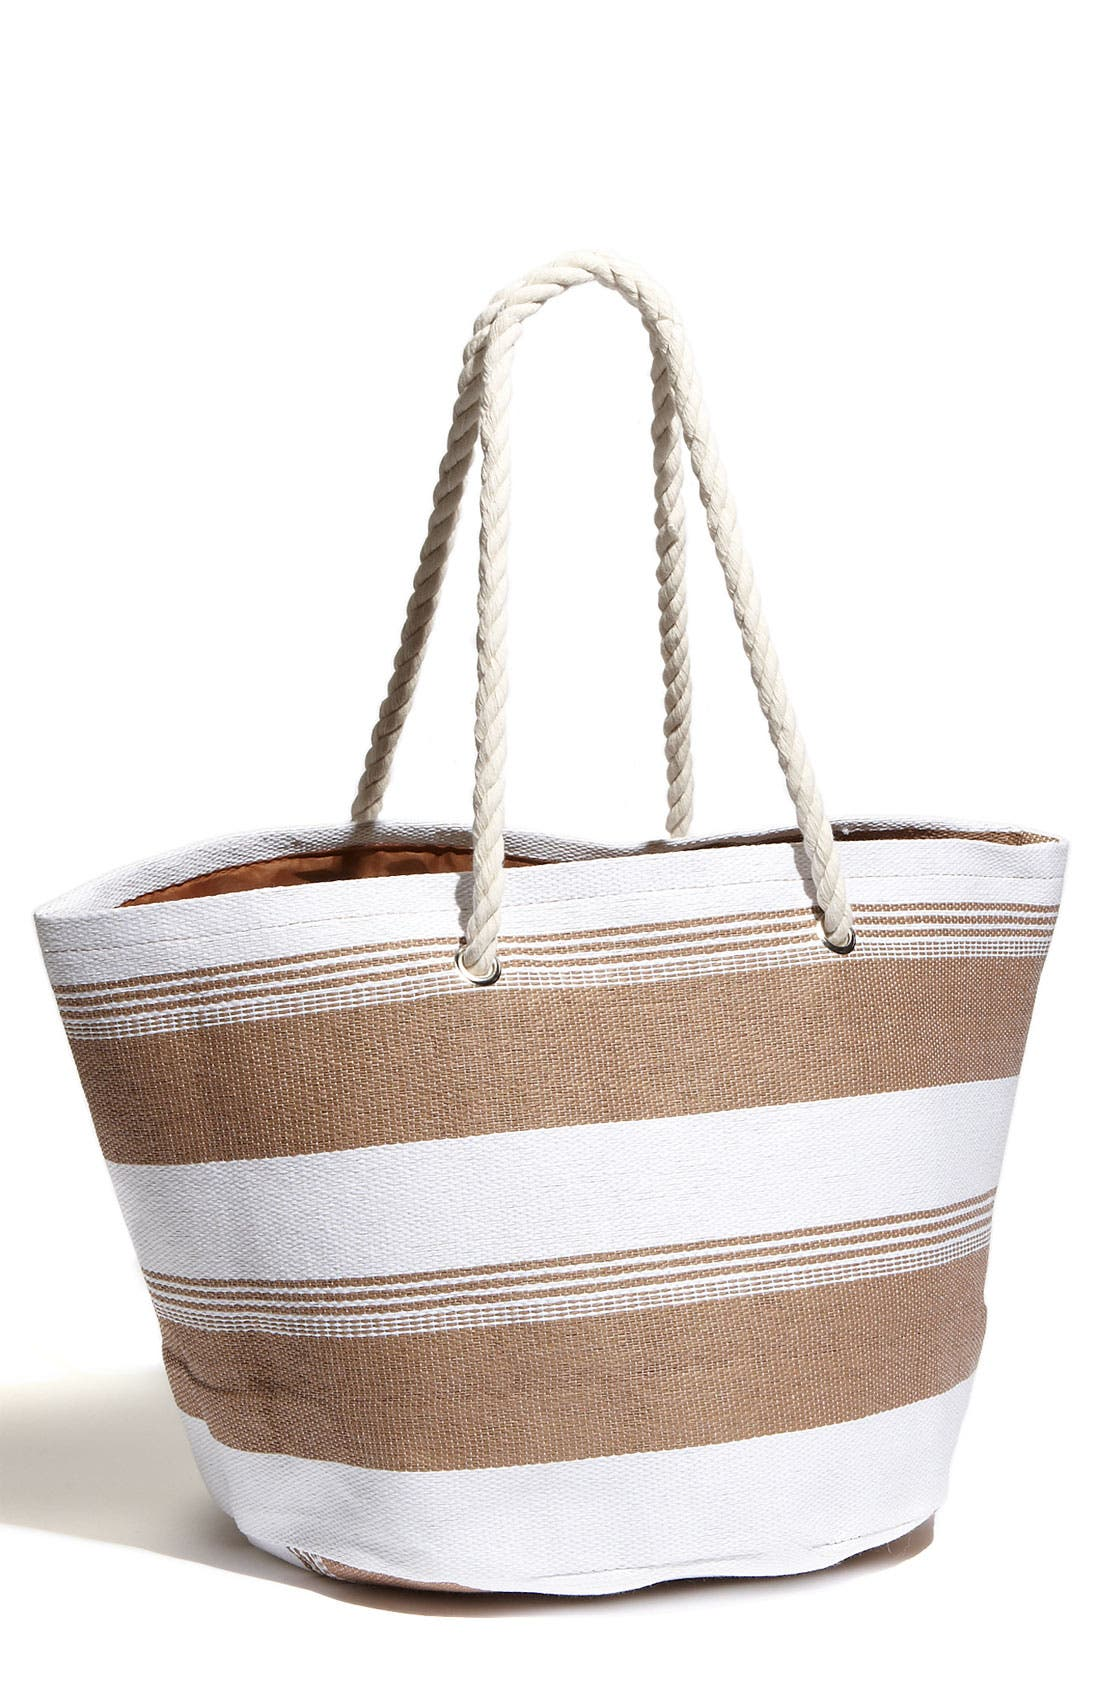 CESCA Rope Handle Woven Stripe Tote, Main, color, 242